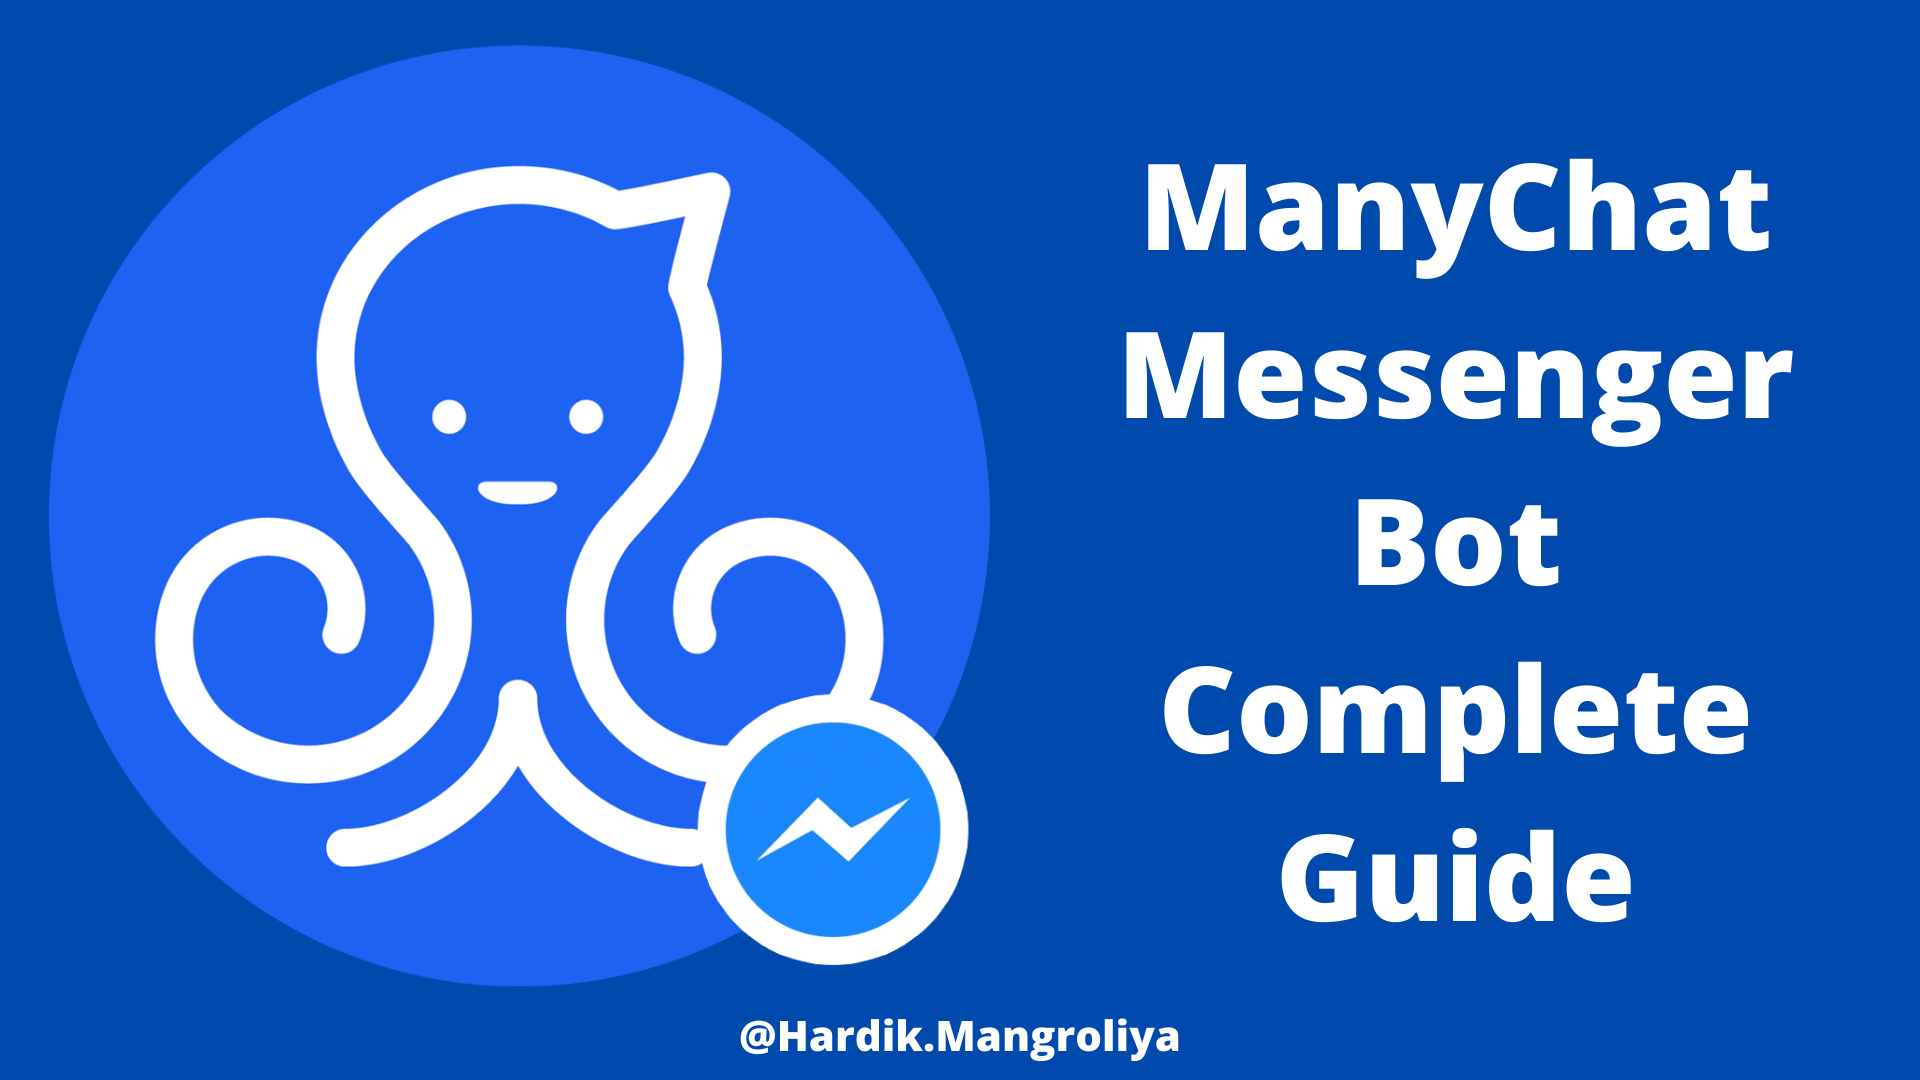 Manychat Messenger Bot Complete Guide